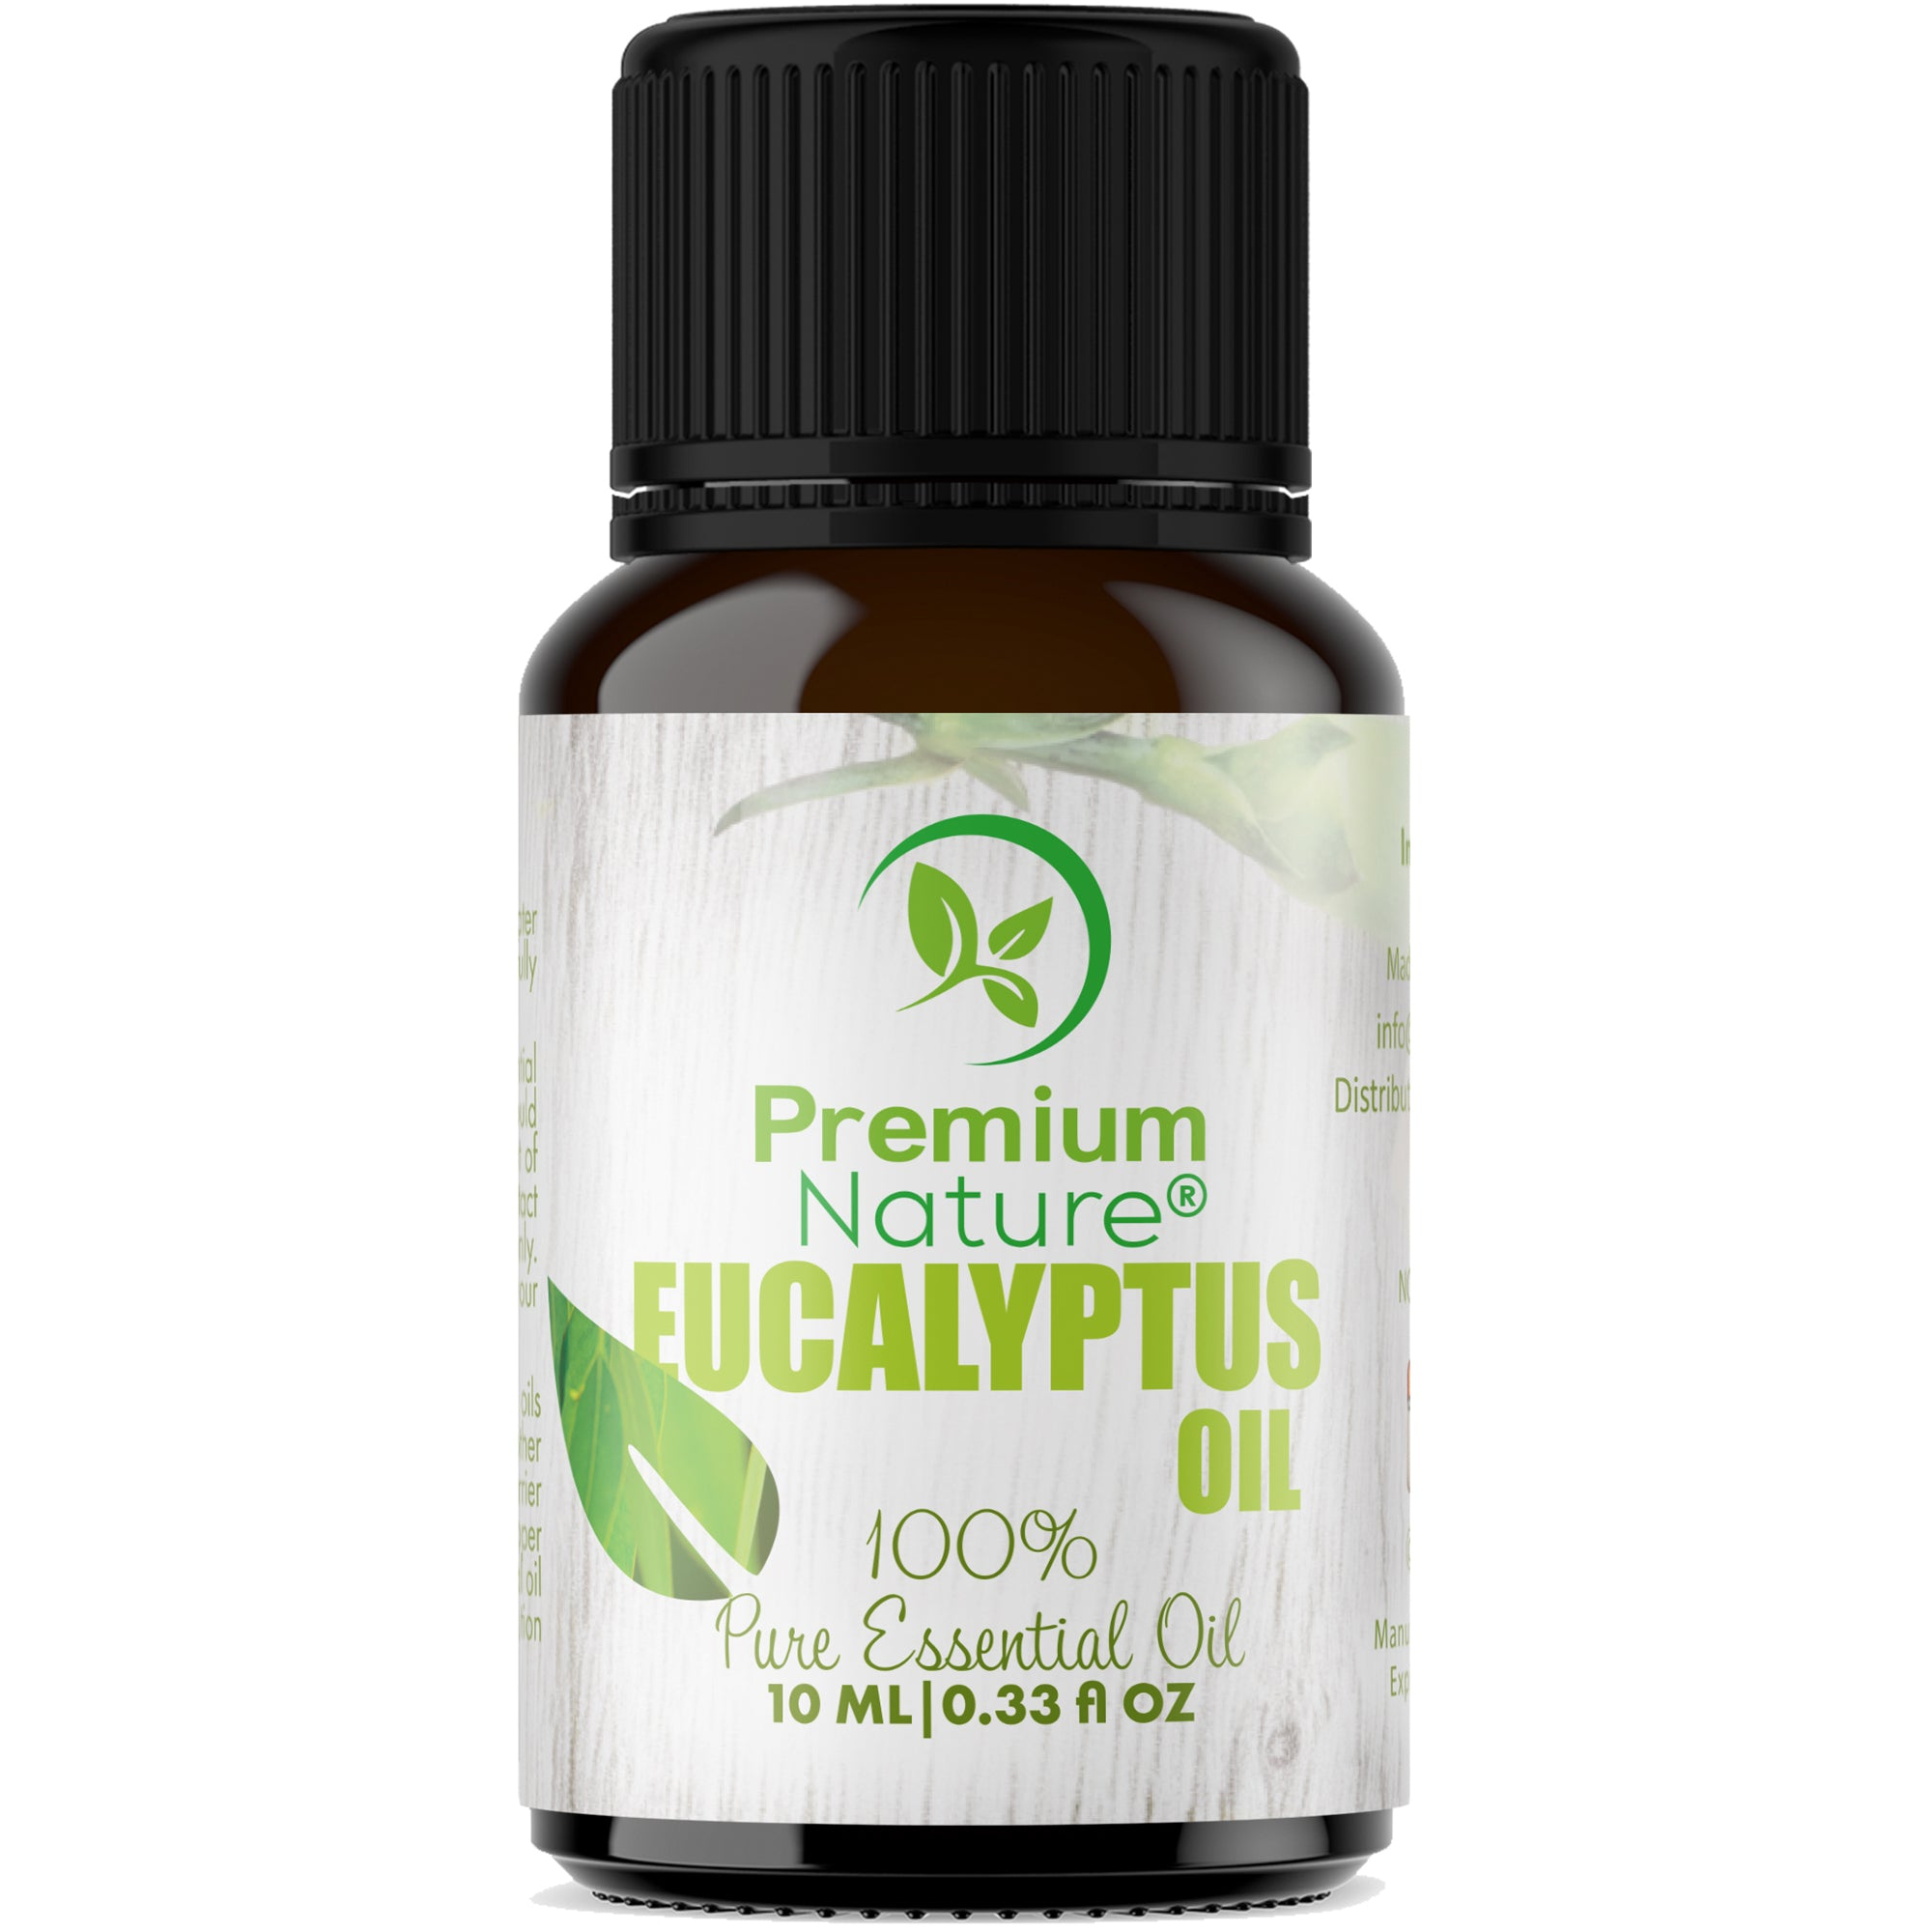 Eucalyptus Essential Oil by Premium Nature